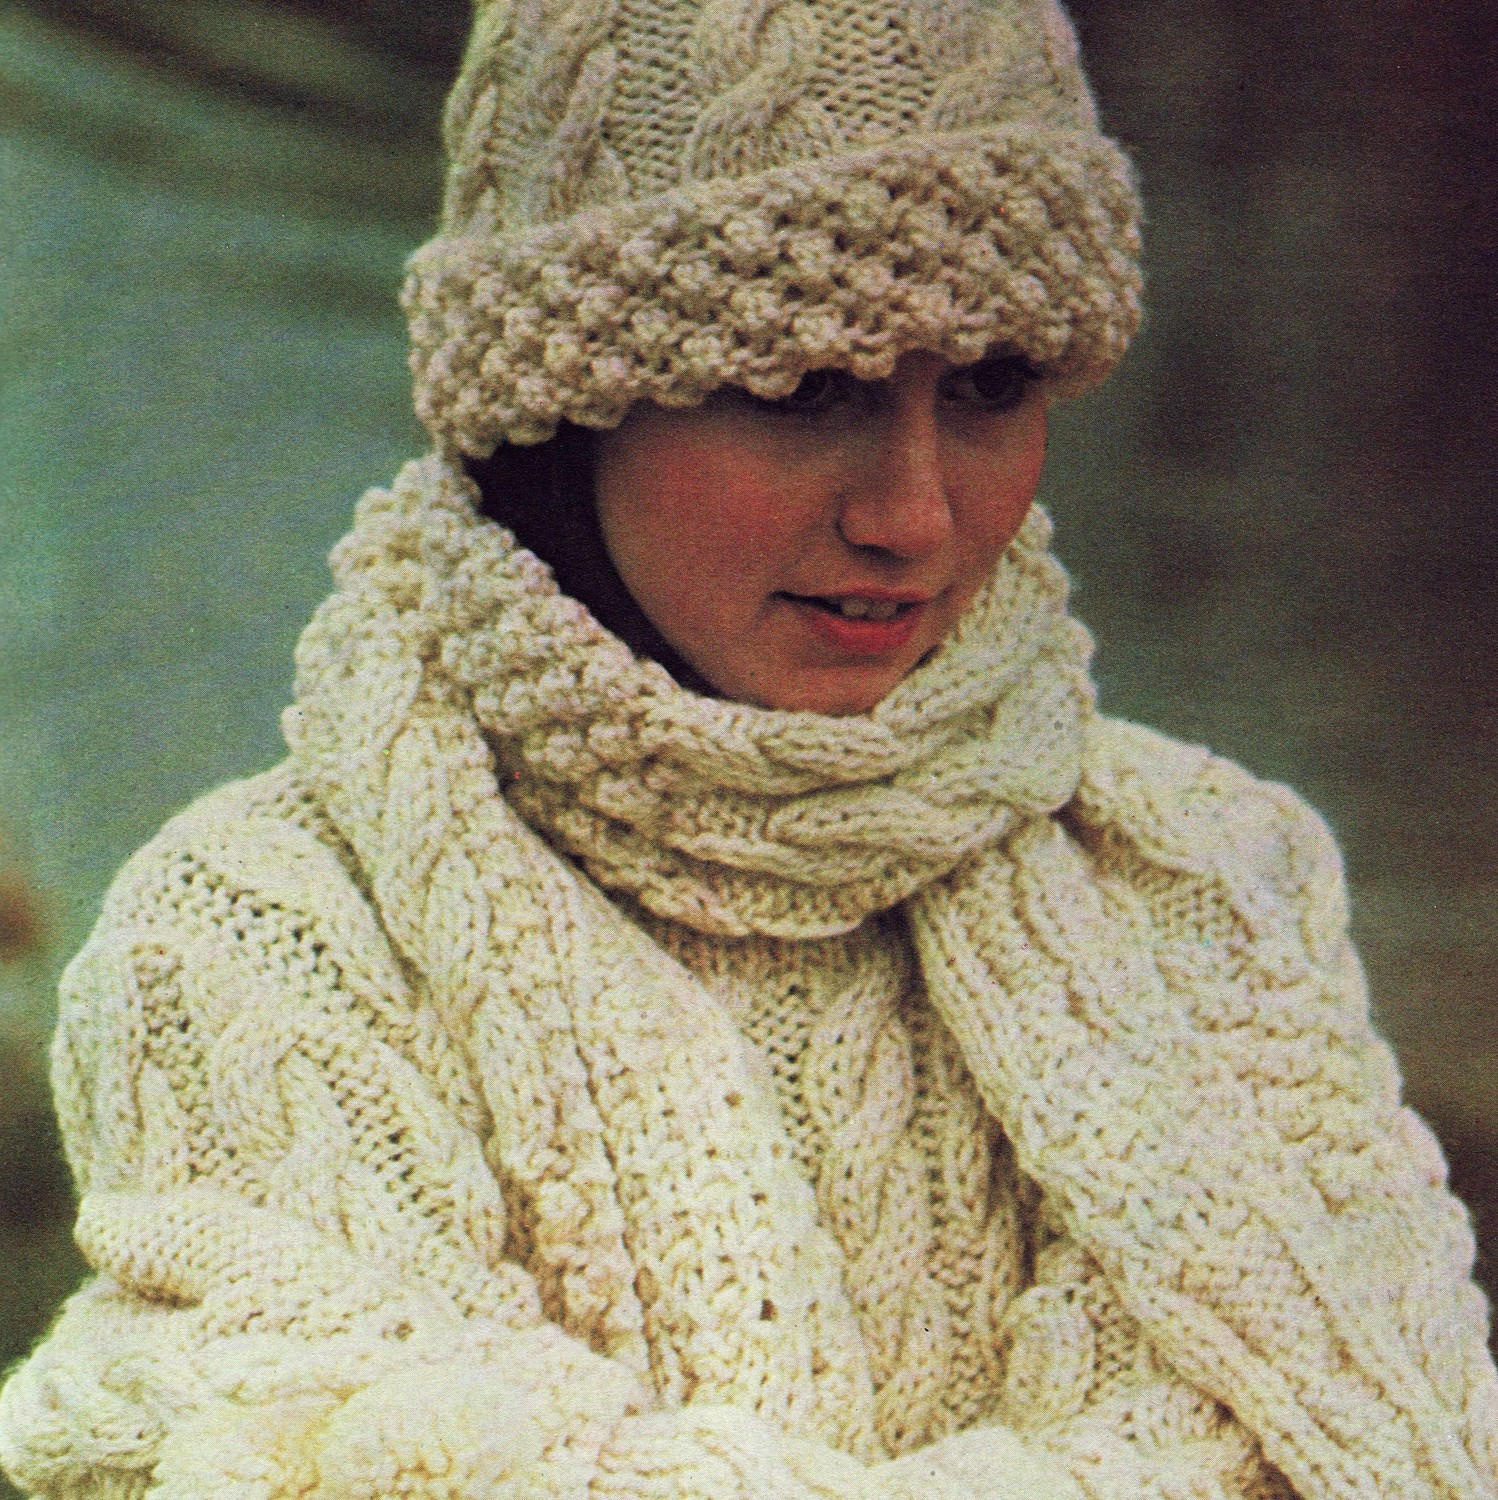 Knitting and Crochet Luxury Scarf and Hat Knitting Patterns Of Amazing 45 Photos Knitting and Crochet